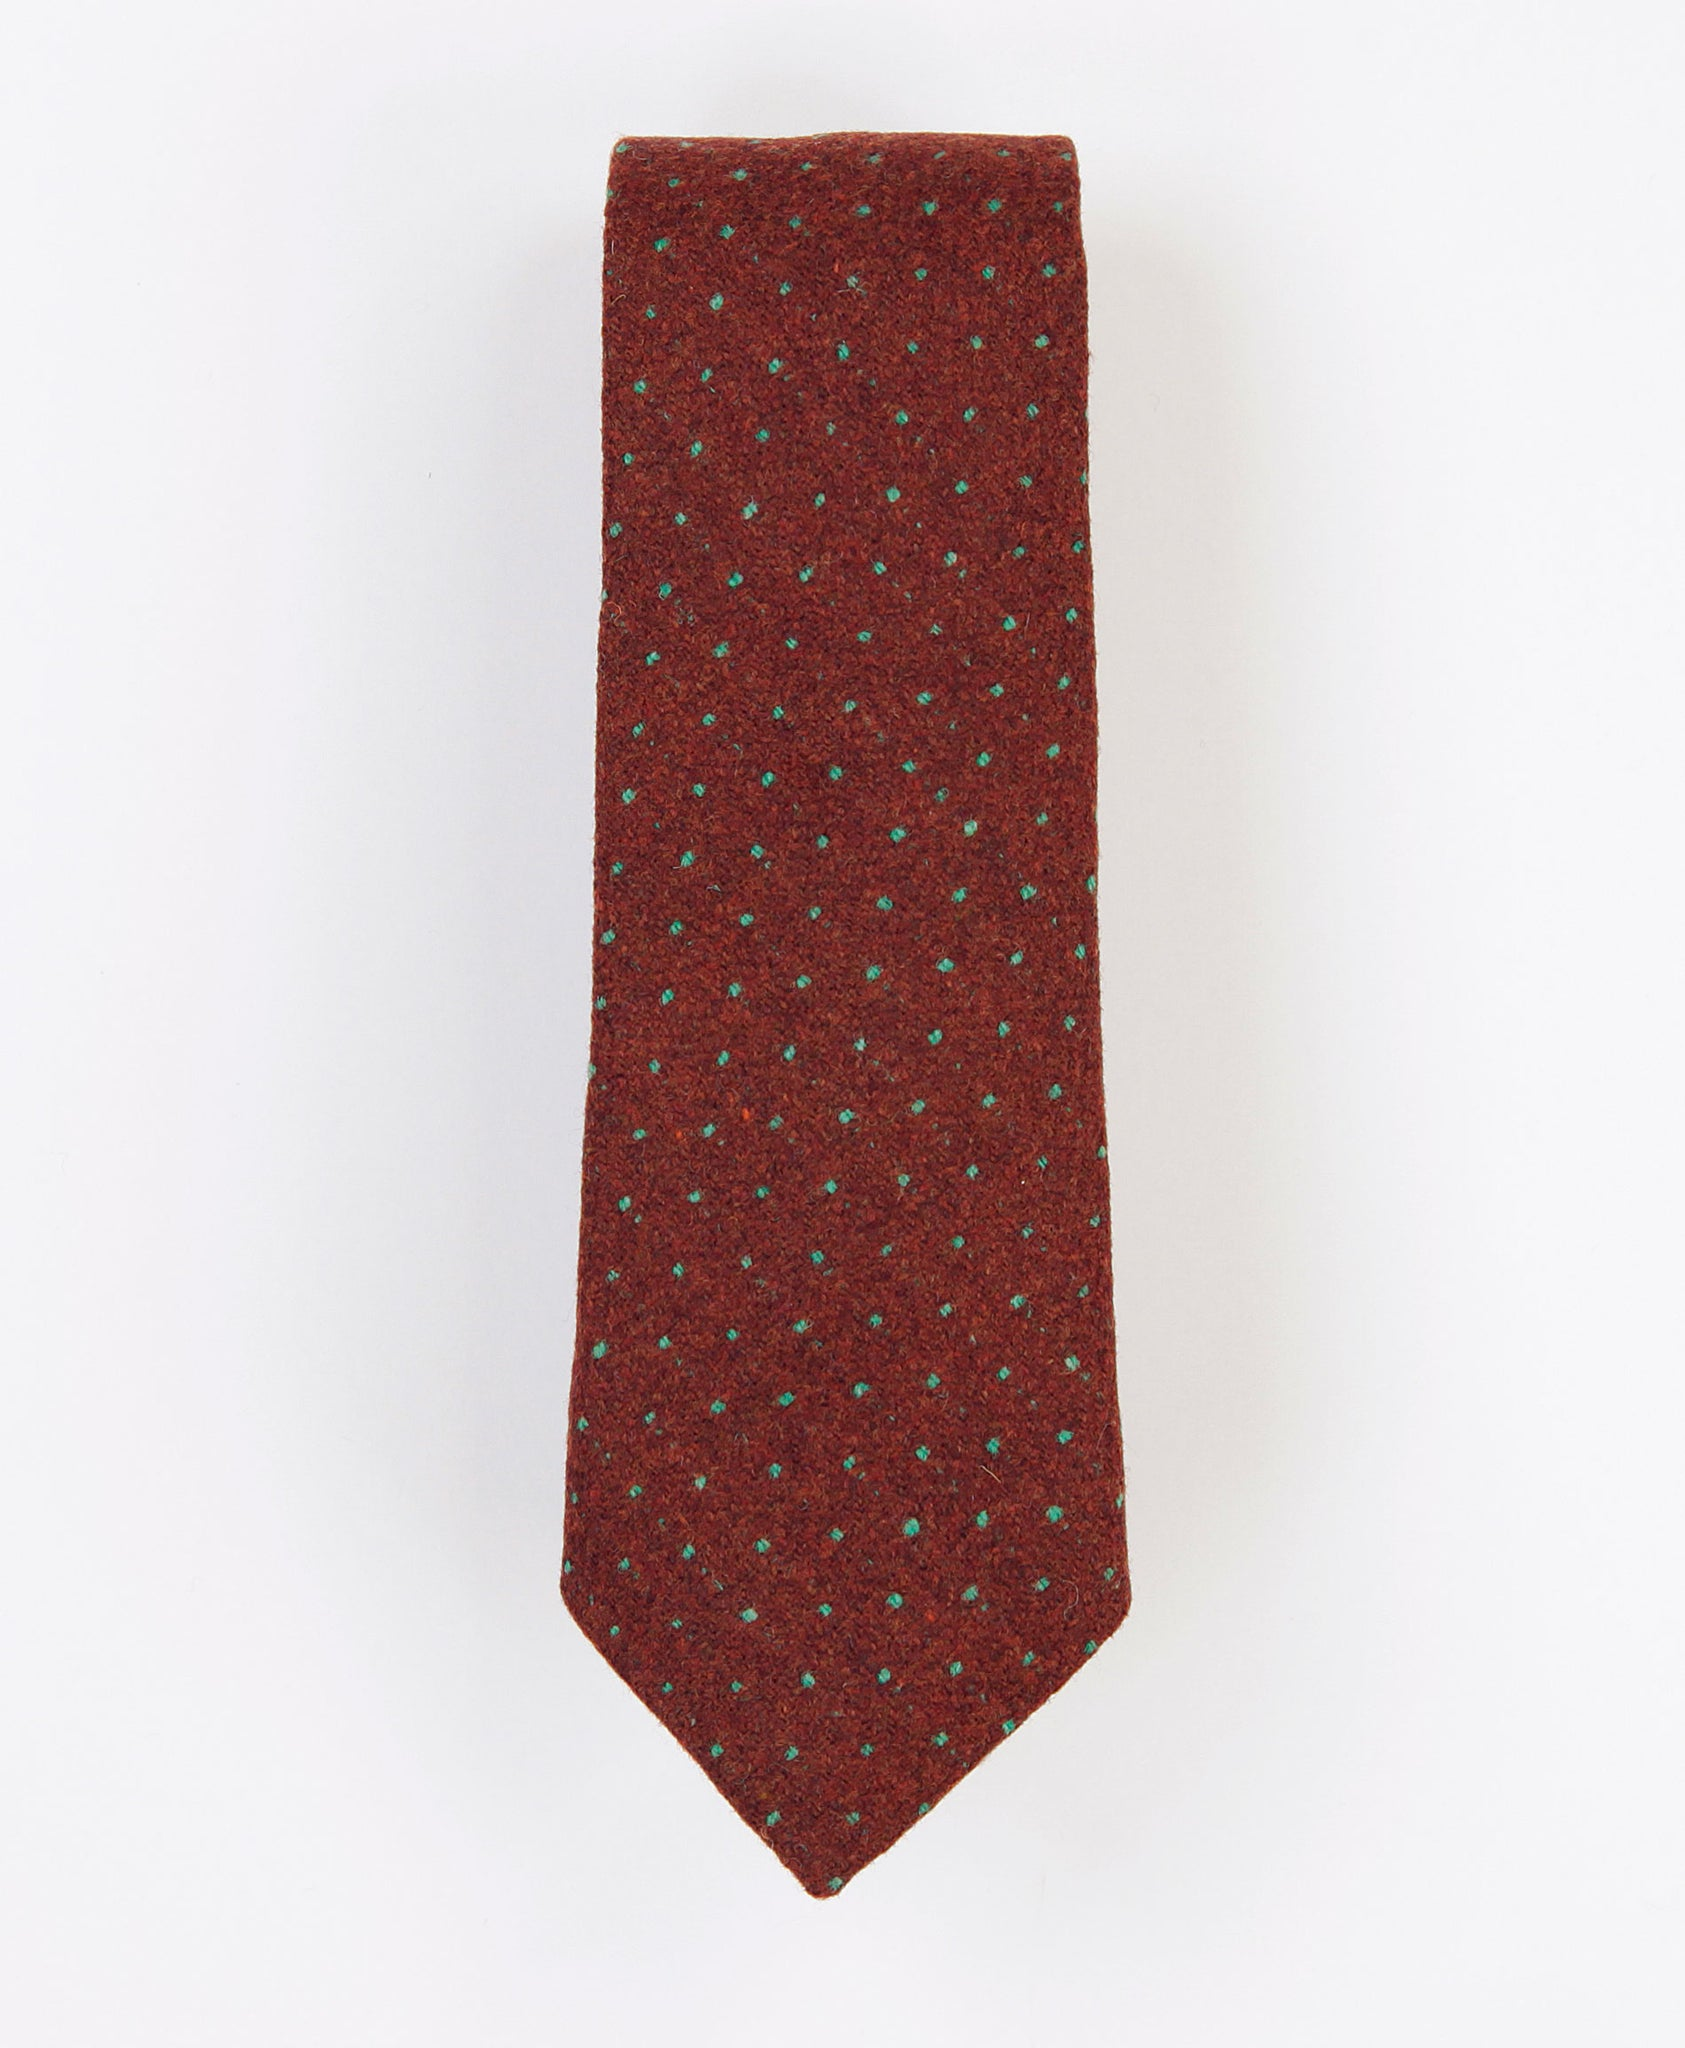 The Preston Necktie